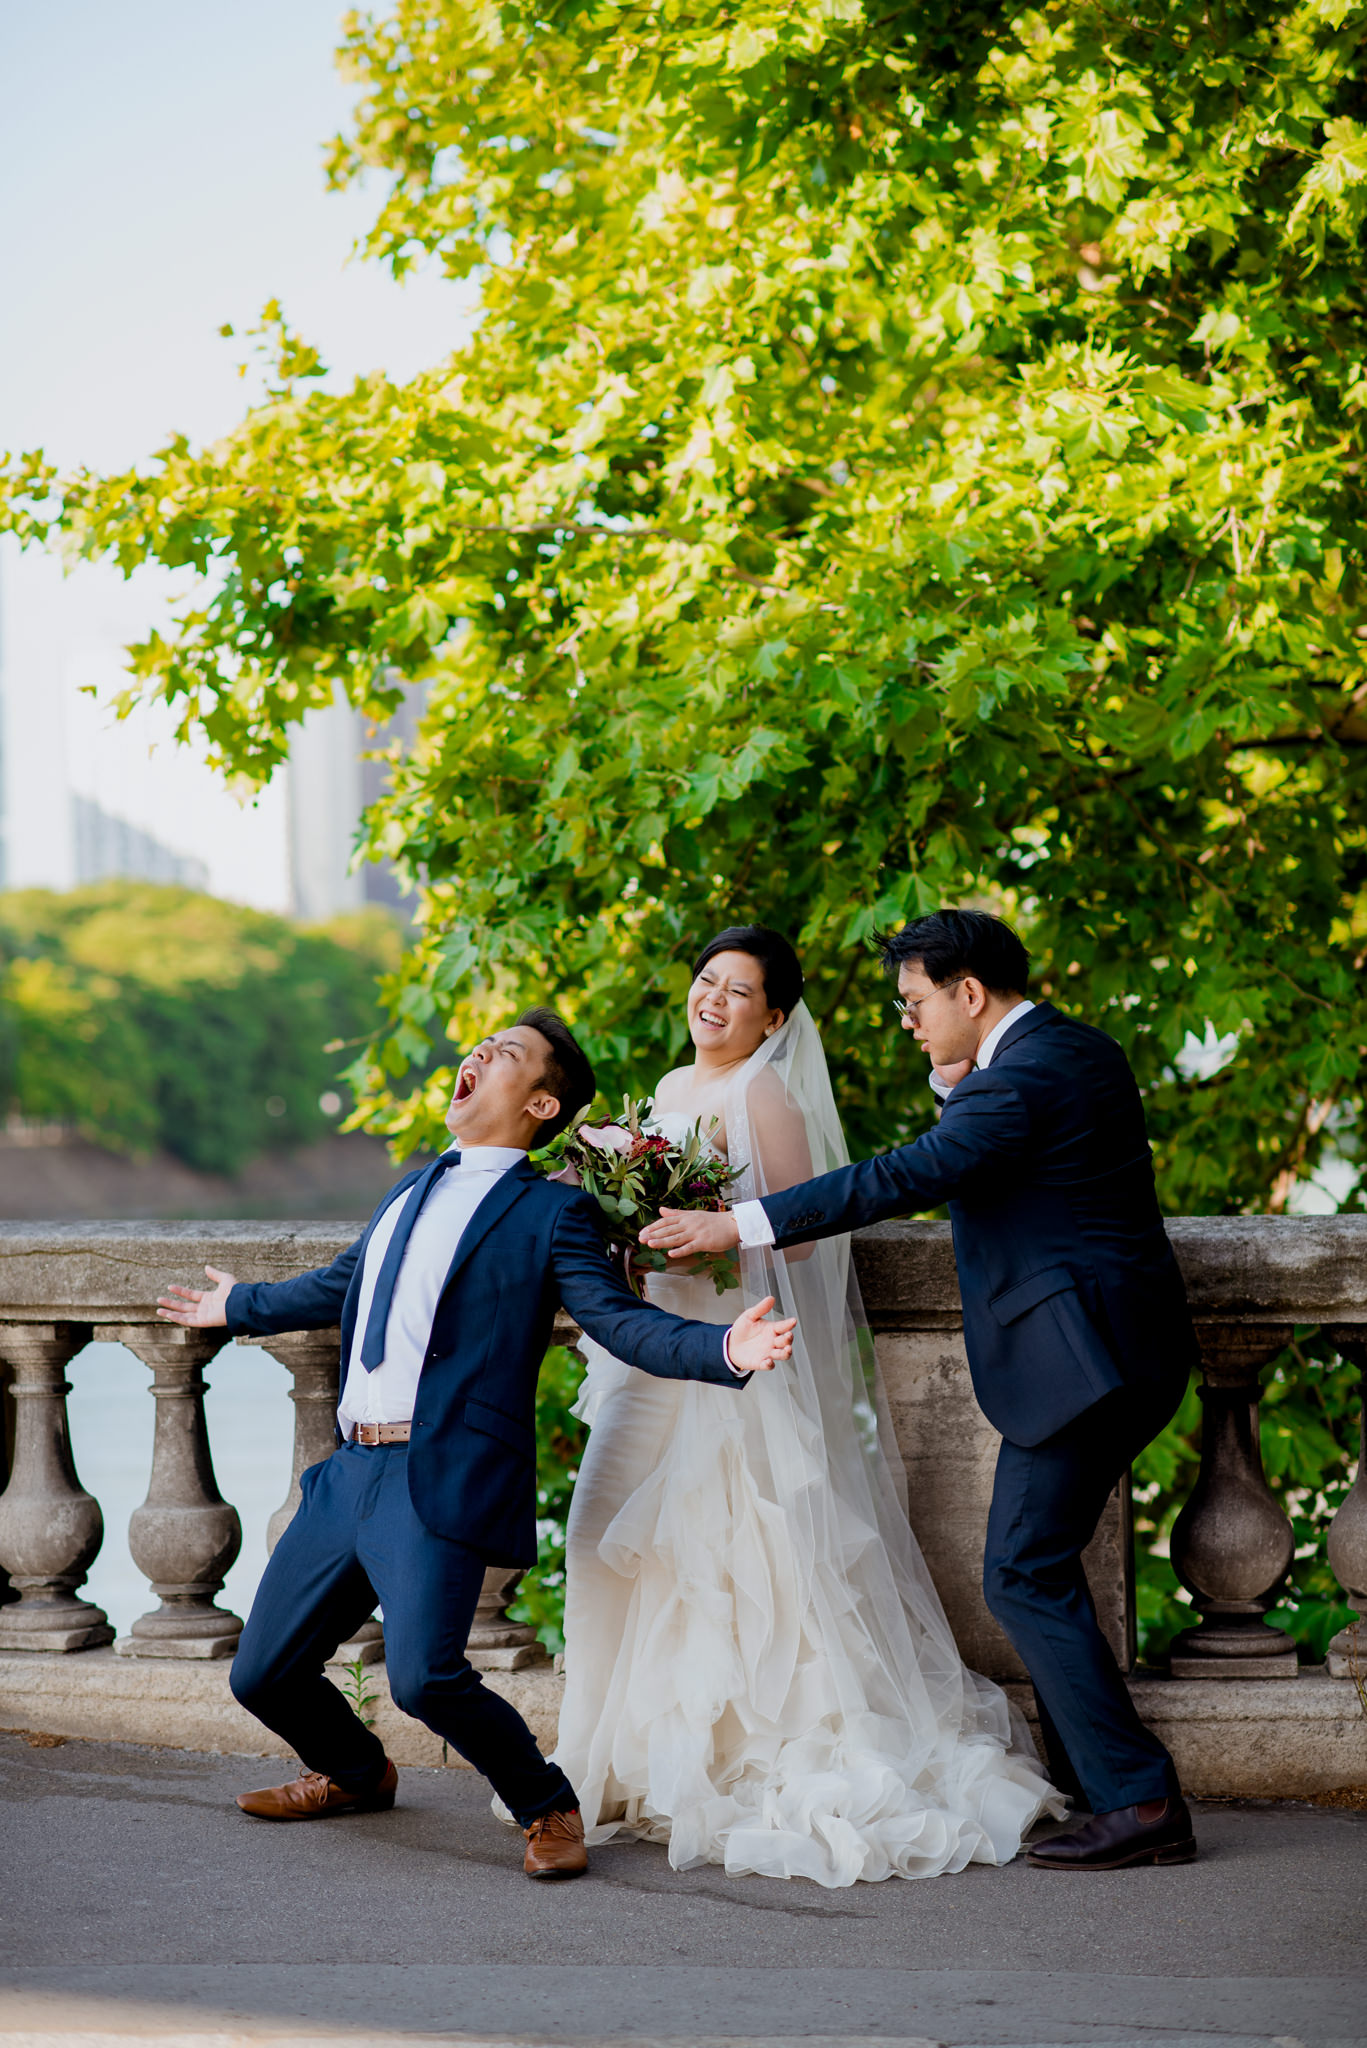 Two men in suits pretend to be bodyguards to a laughing bride